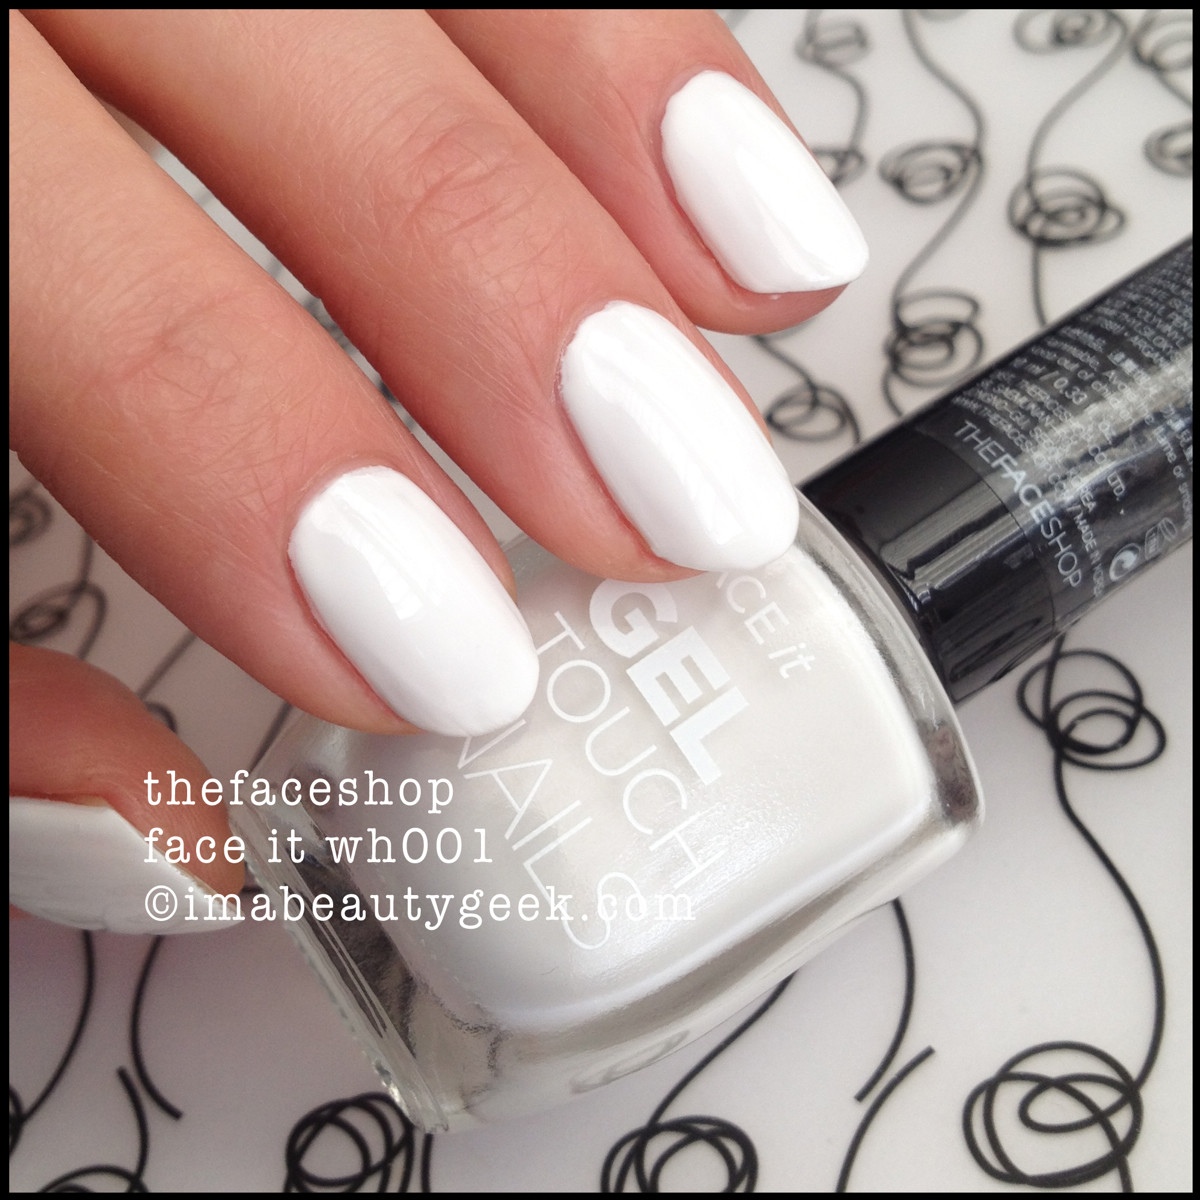 The Face Shop Face It Gel Touch nails wh001